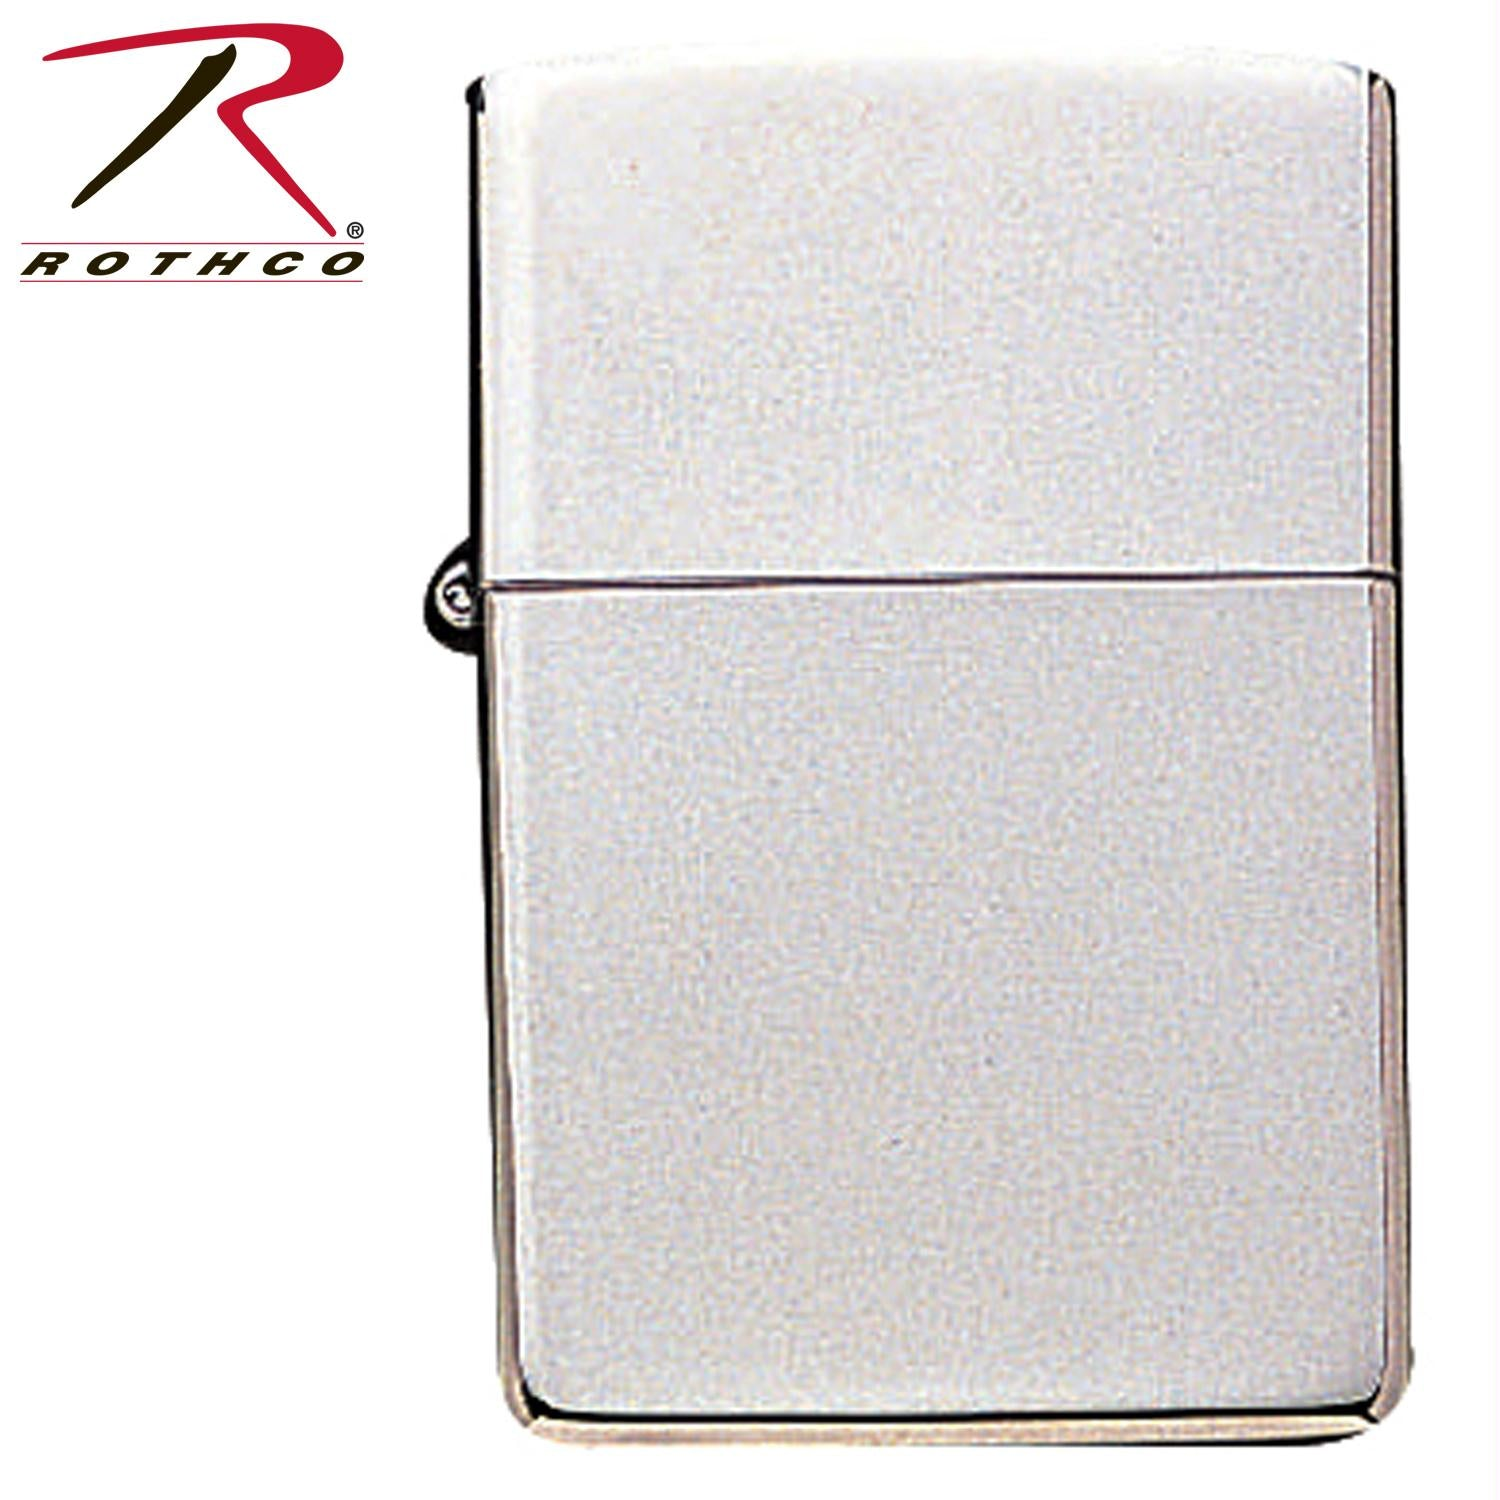 Zippo High Polish Chrome Lighter - Chrome